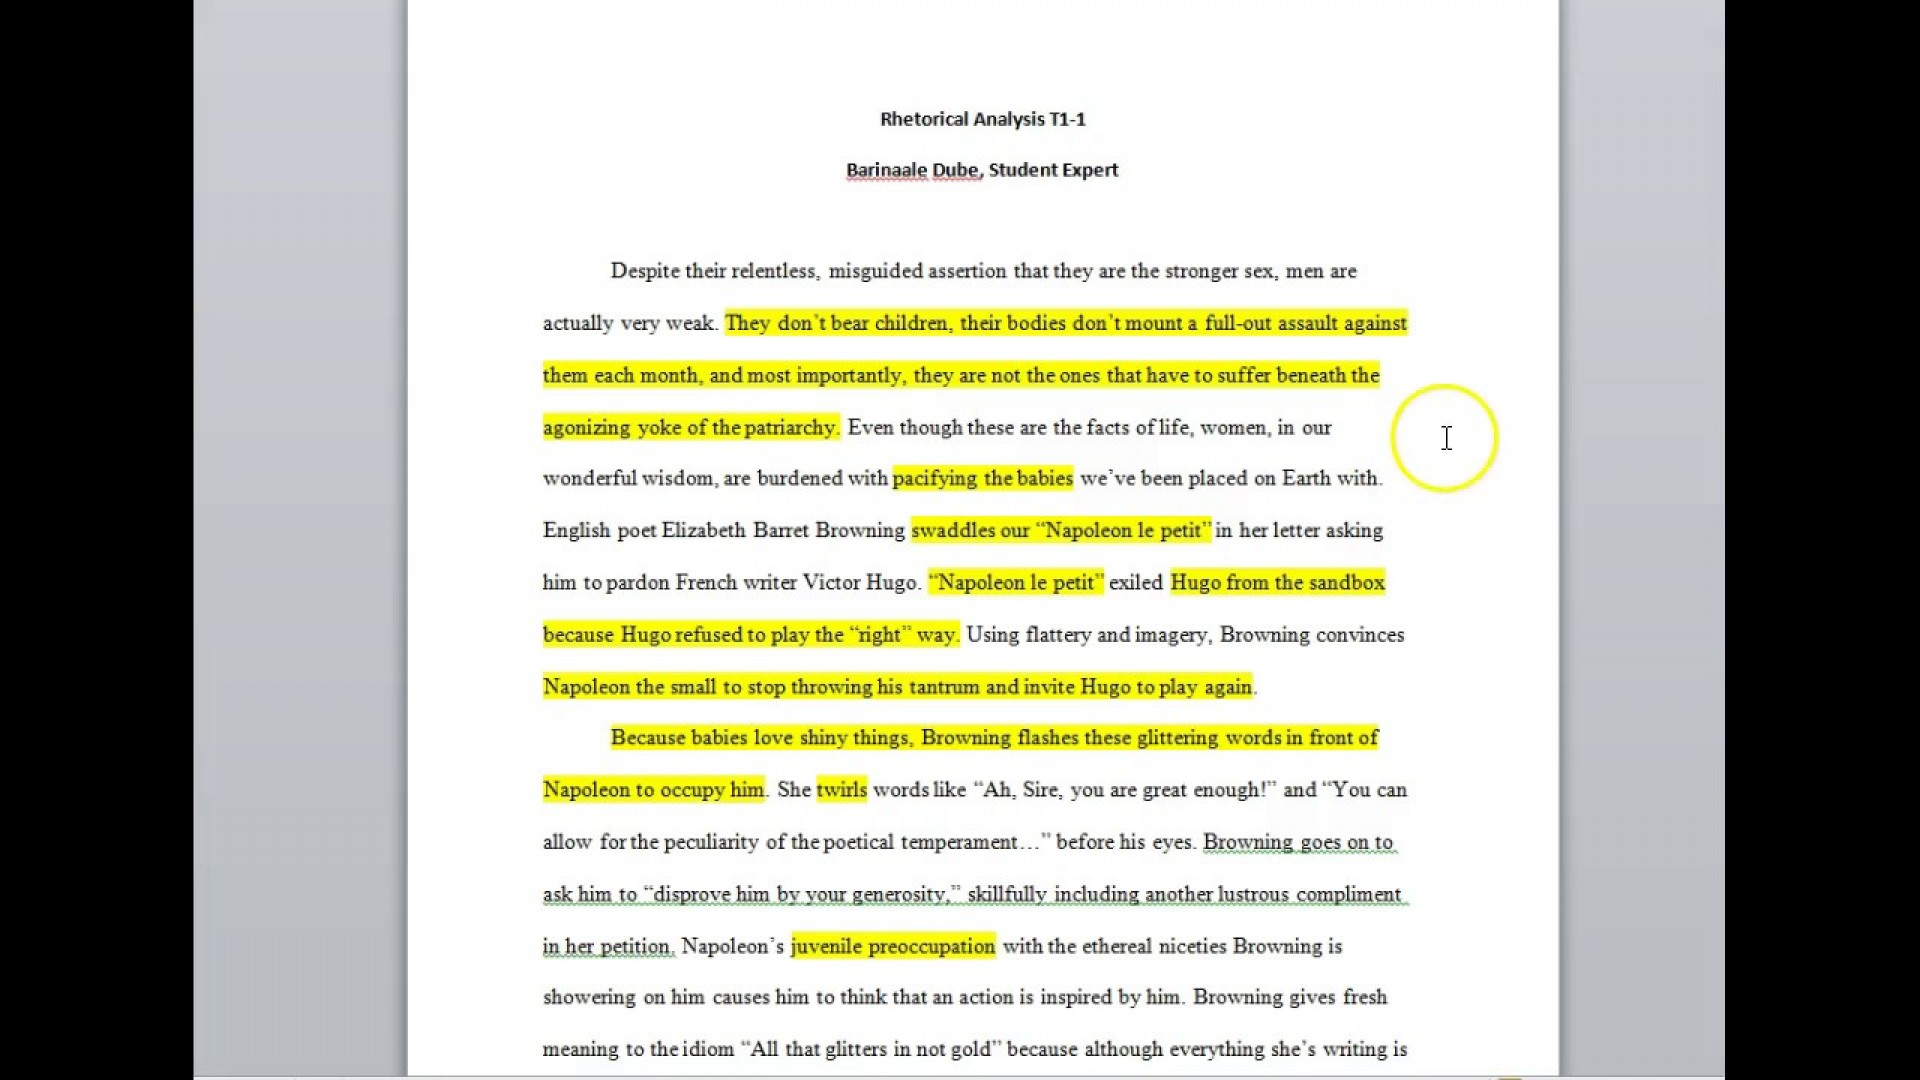 002 Essay Example Rethorical Awful Rhetorical Analysis Outline Conclusion Strategies Topics 2018 1920